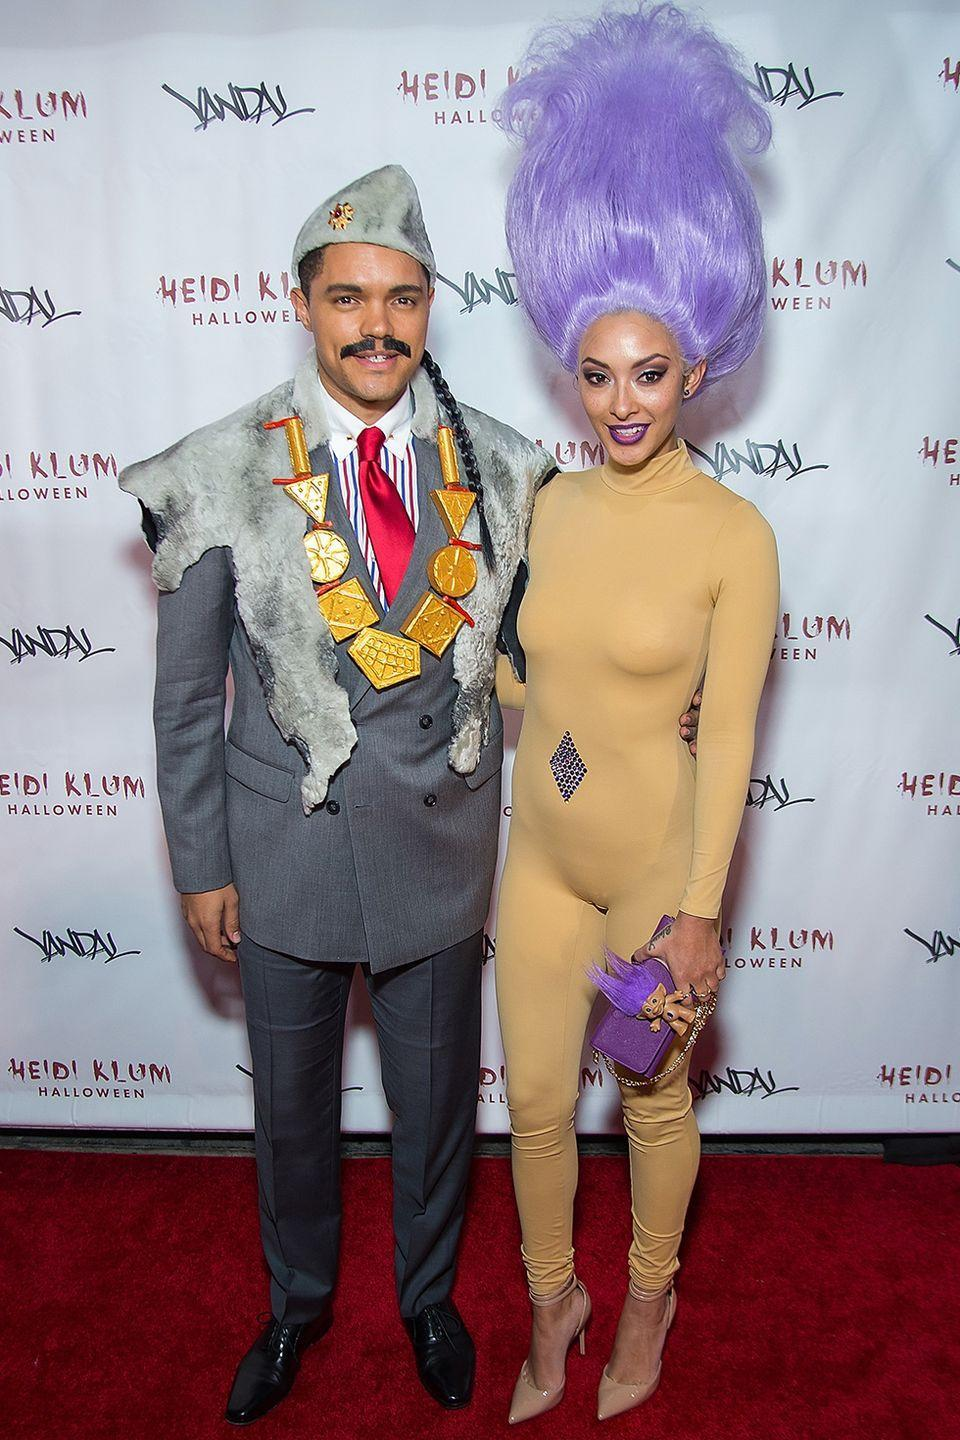 <p>While not exactly matching, <em>The Daily Show</em> host Trevor Noah looked great as Eddie Murphy's character from <em>Coming to America</em>, and girlfriend Jordyn Taylor wore an impressive Trolls costume to Heidi Klum's 2016 Halloween party.</p>